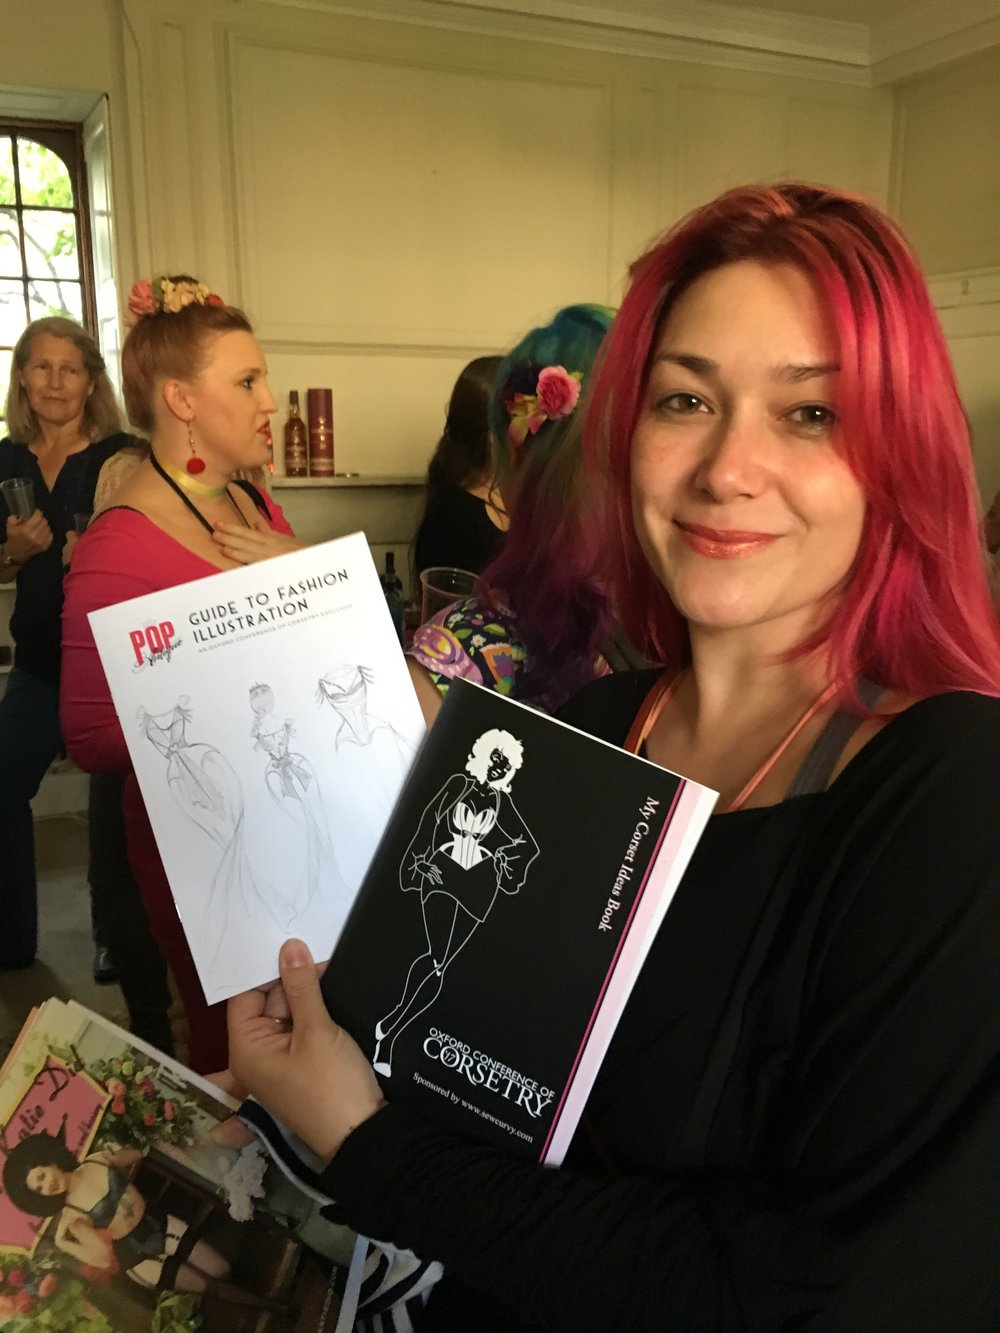 Marianne Faulkner of Pop Antique with her illustration - our pin up girl for the conference.